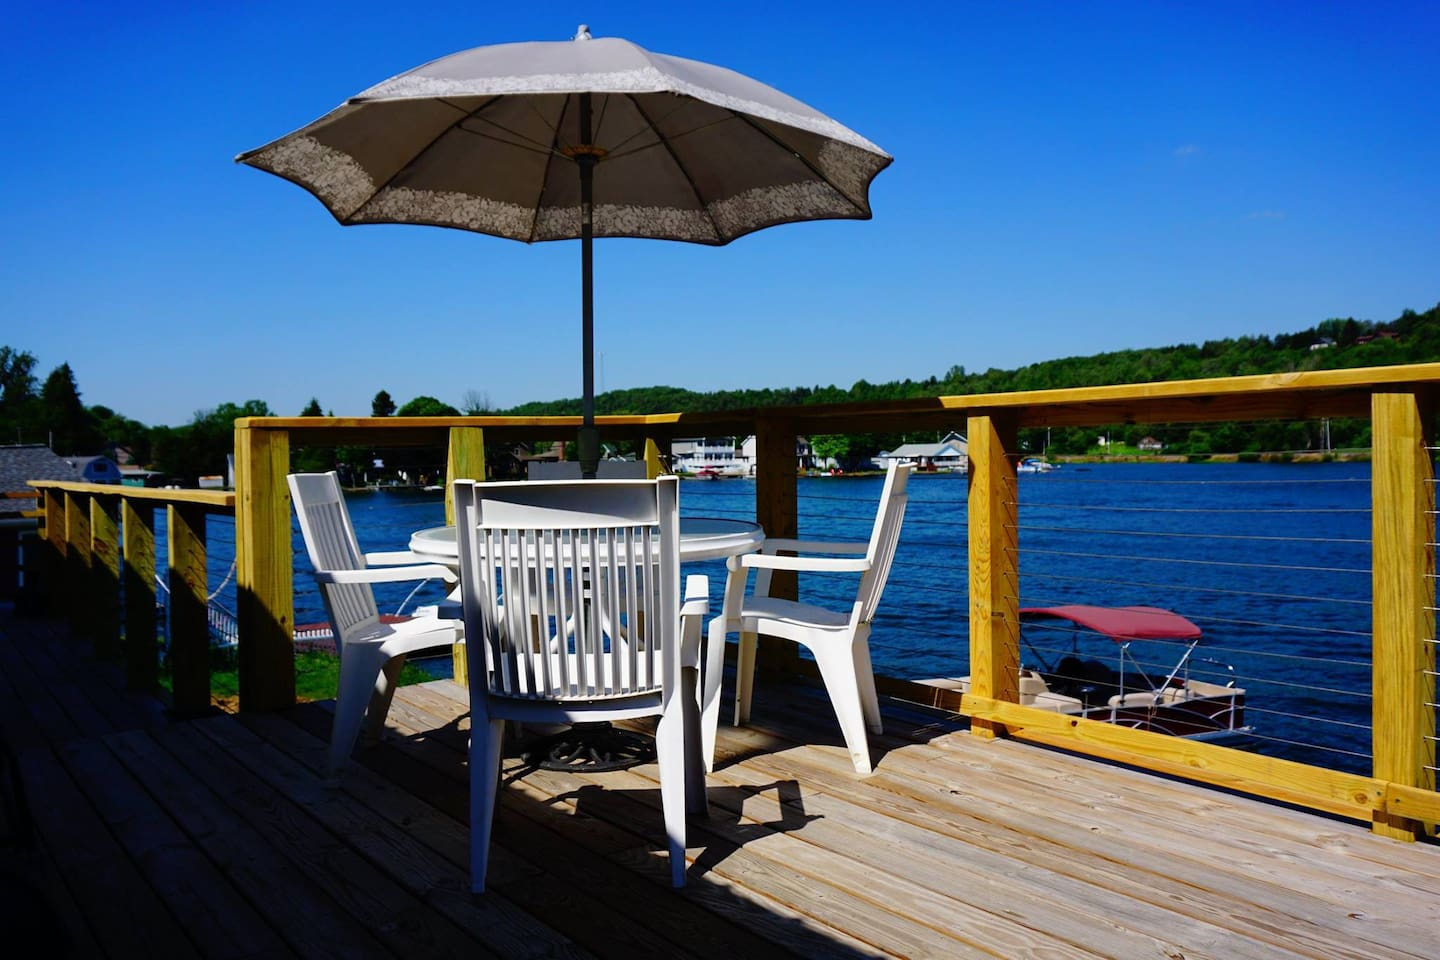 A TWELVE BY FIFTY FOOT DECK WITH TABLES AND CHAIRS AND GRILL